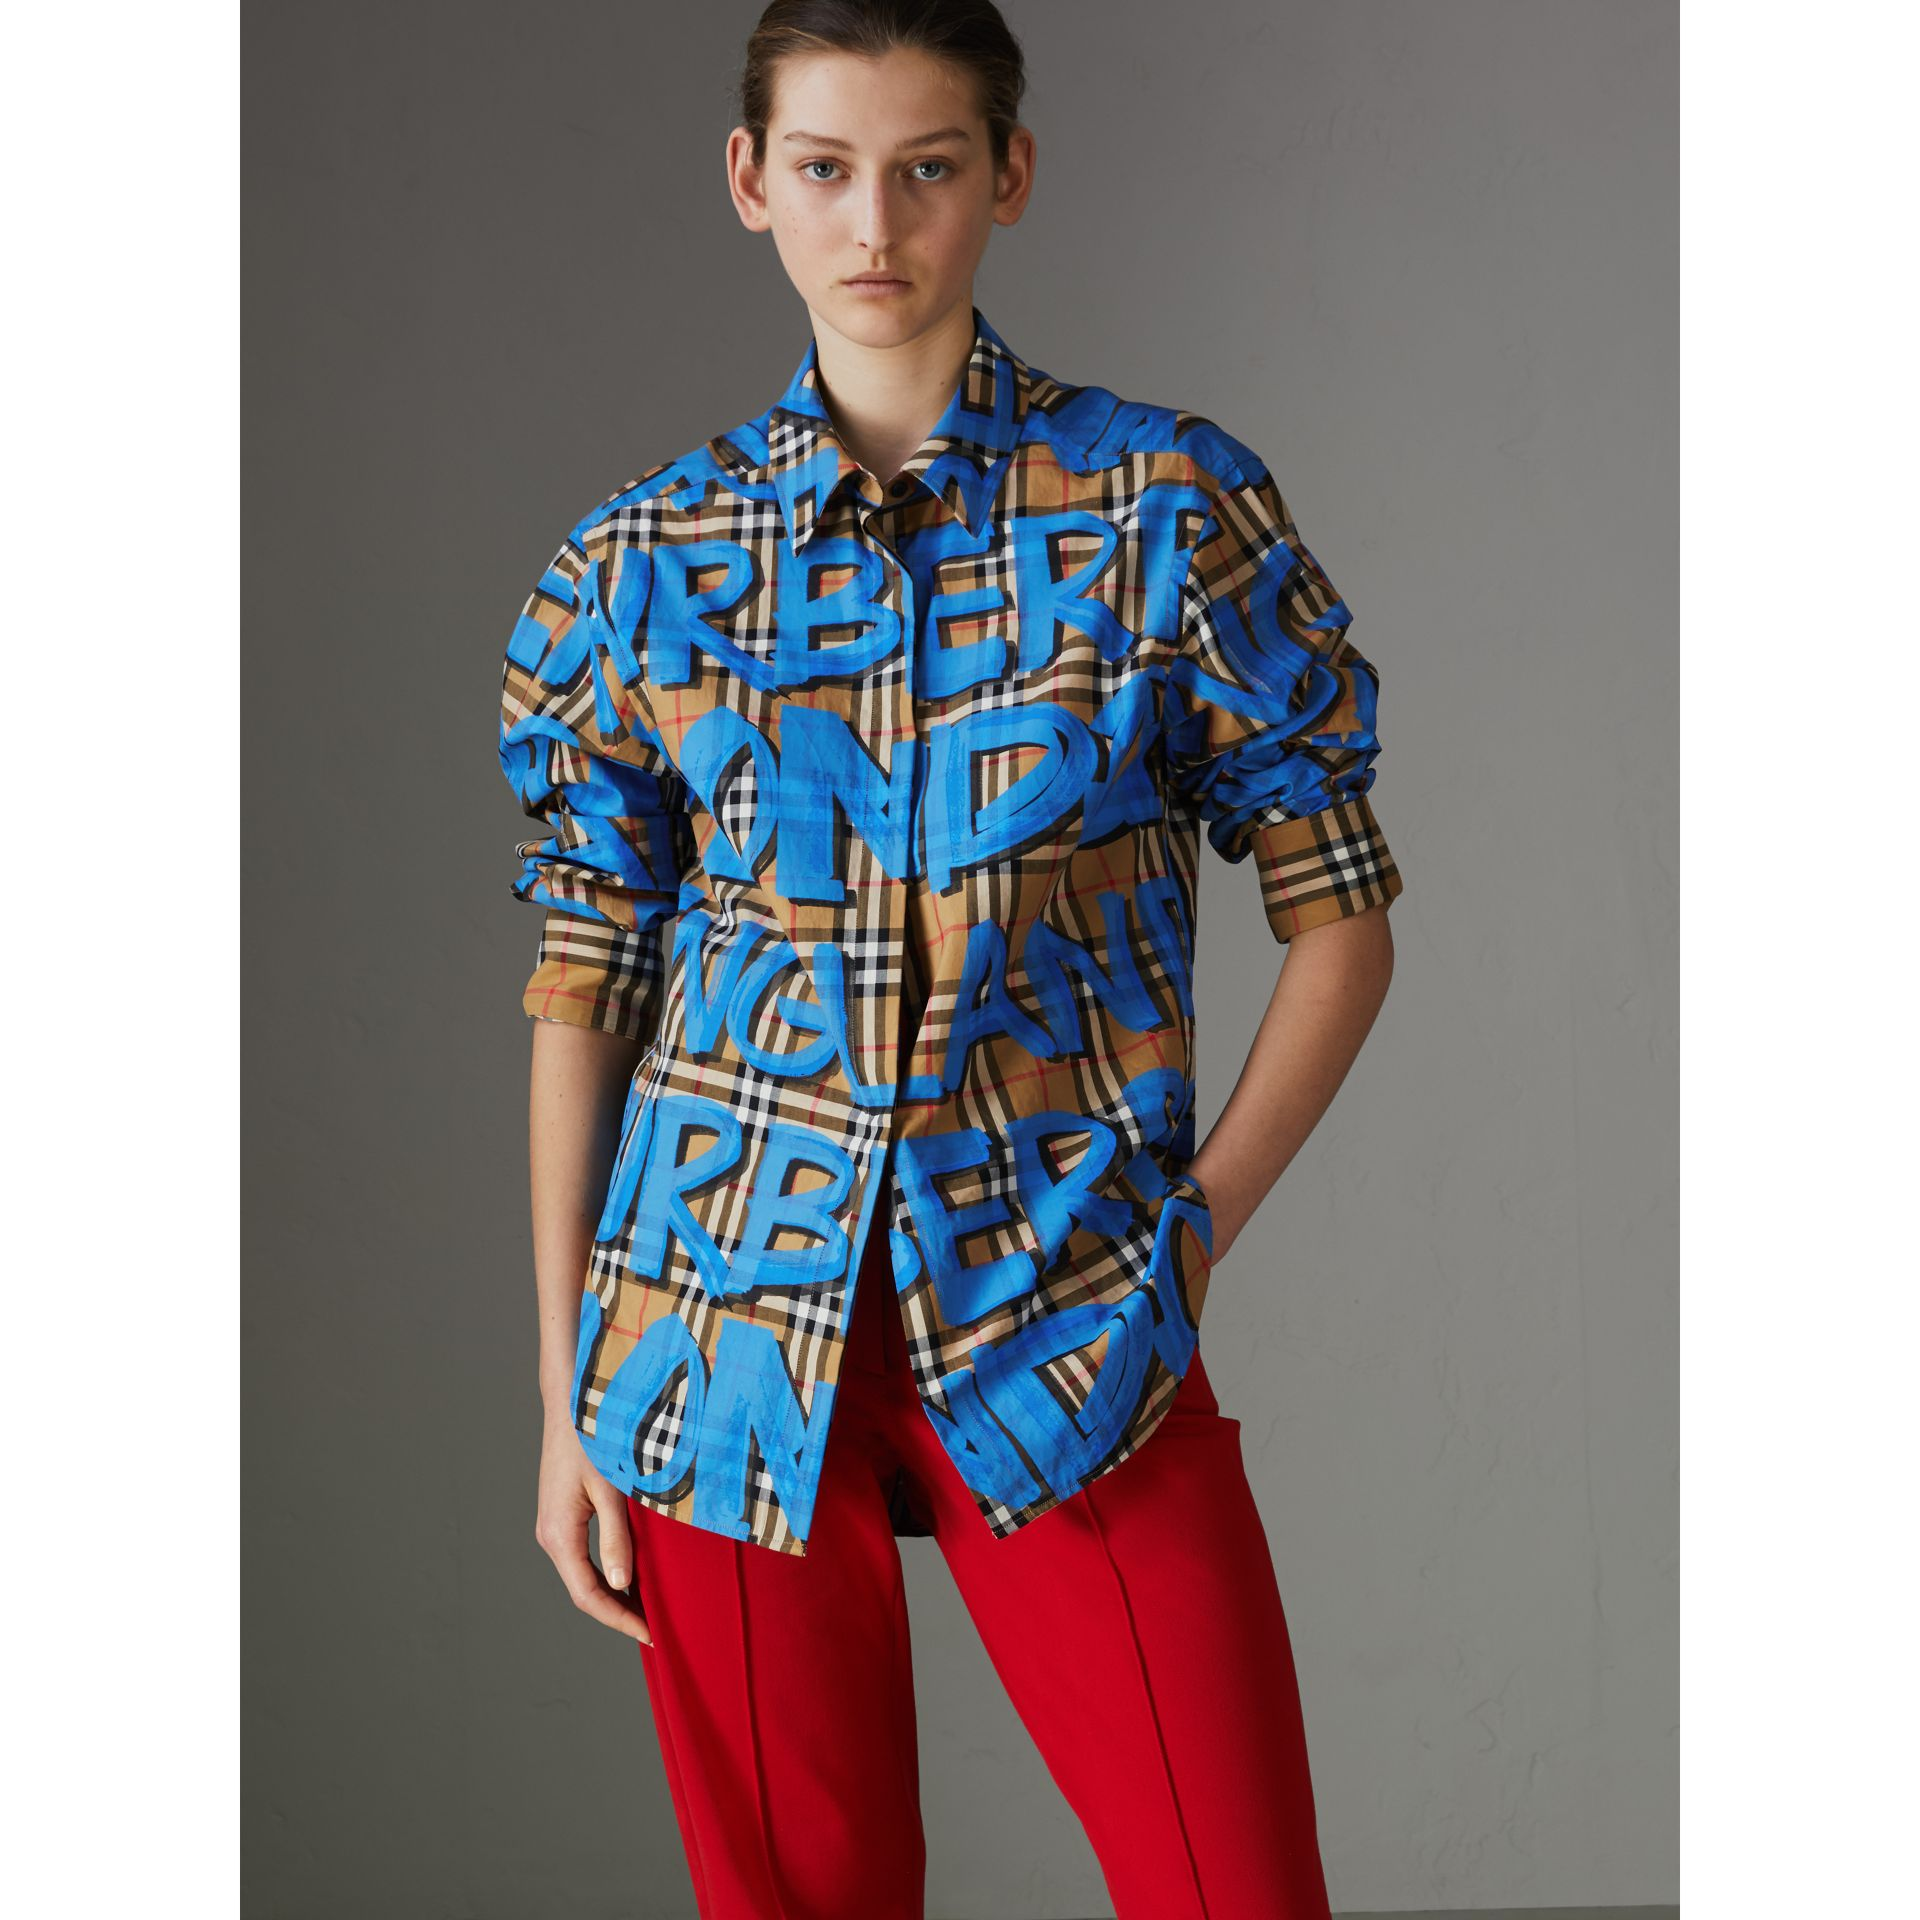 Graffiti Print Vintage Check Cotton Shirt in Bright Blue | Burberry - gallery image 4